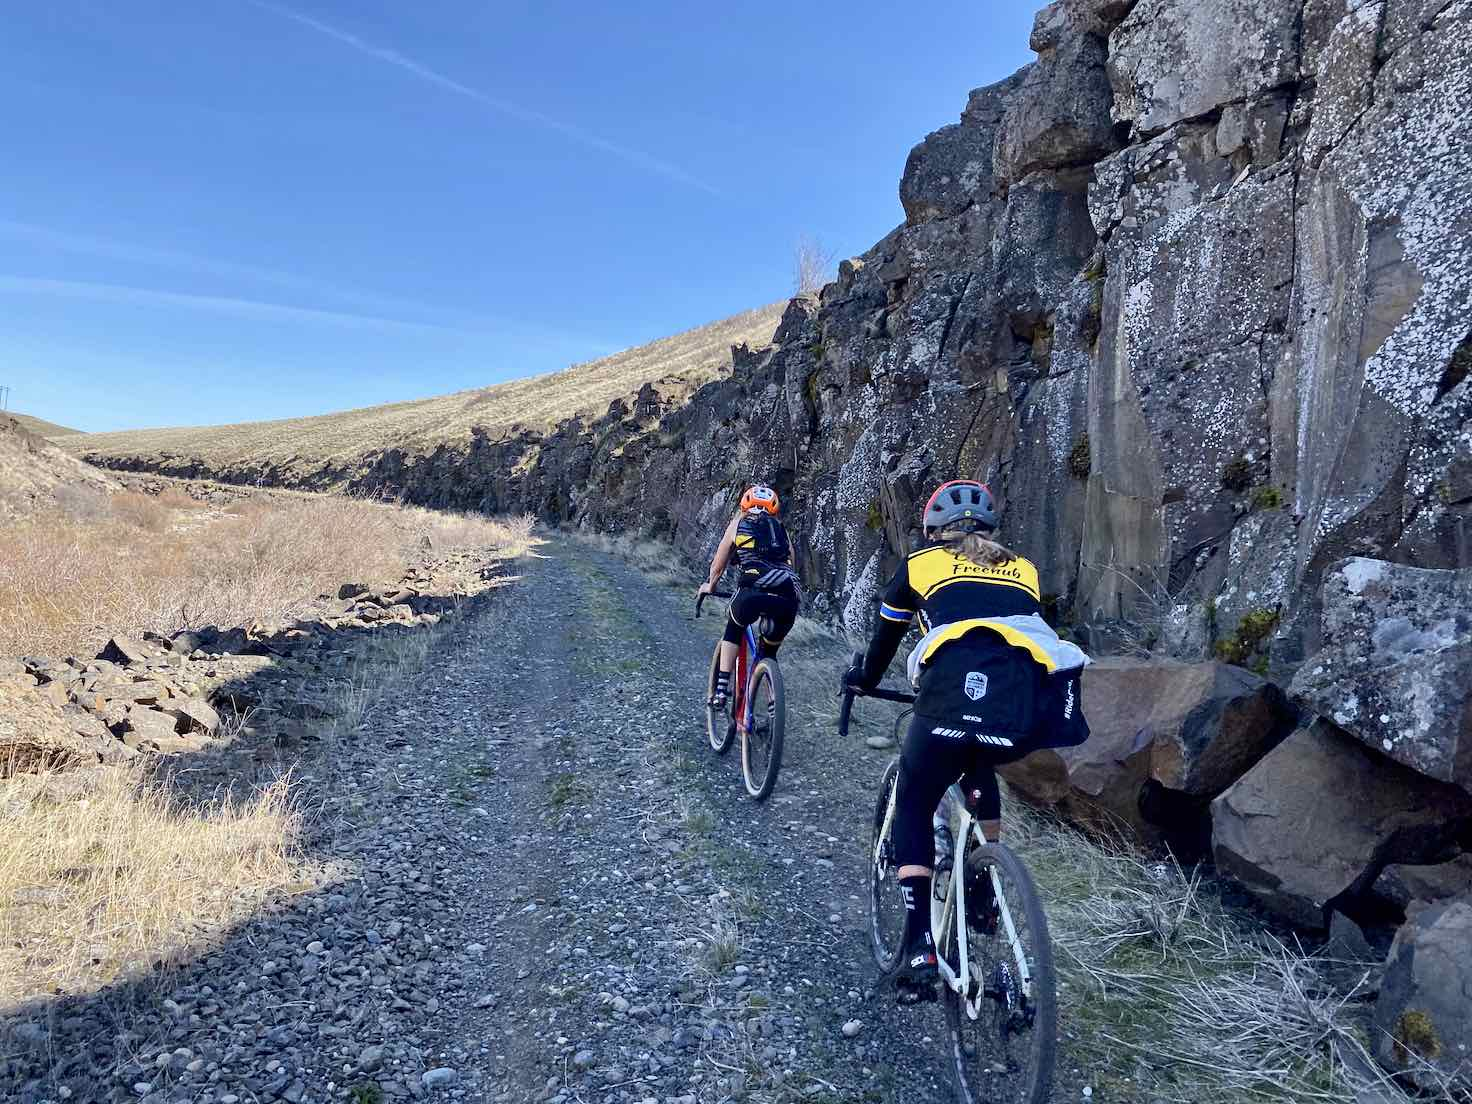 Cyclists on the section of the Swale Canyon trail nears Harms road.